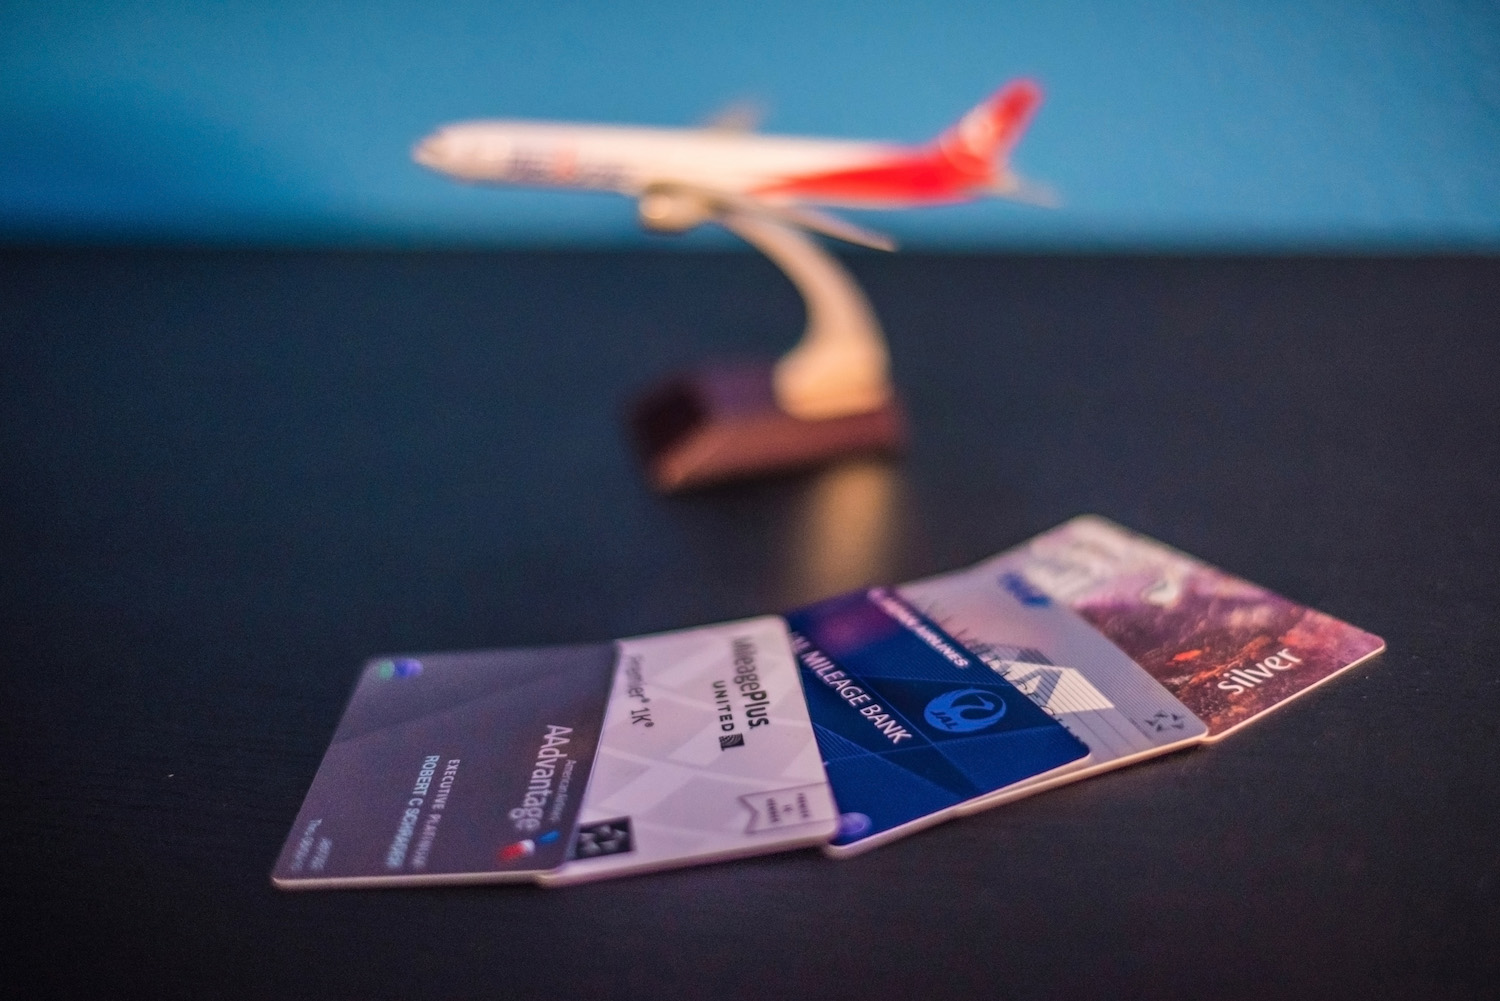 Frequent Flyer Membership Cards